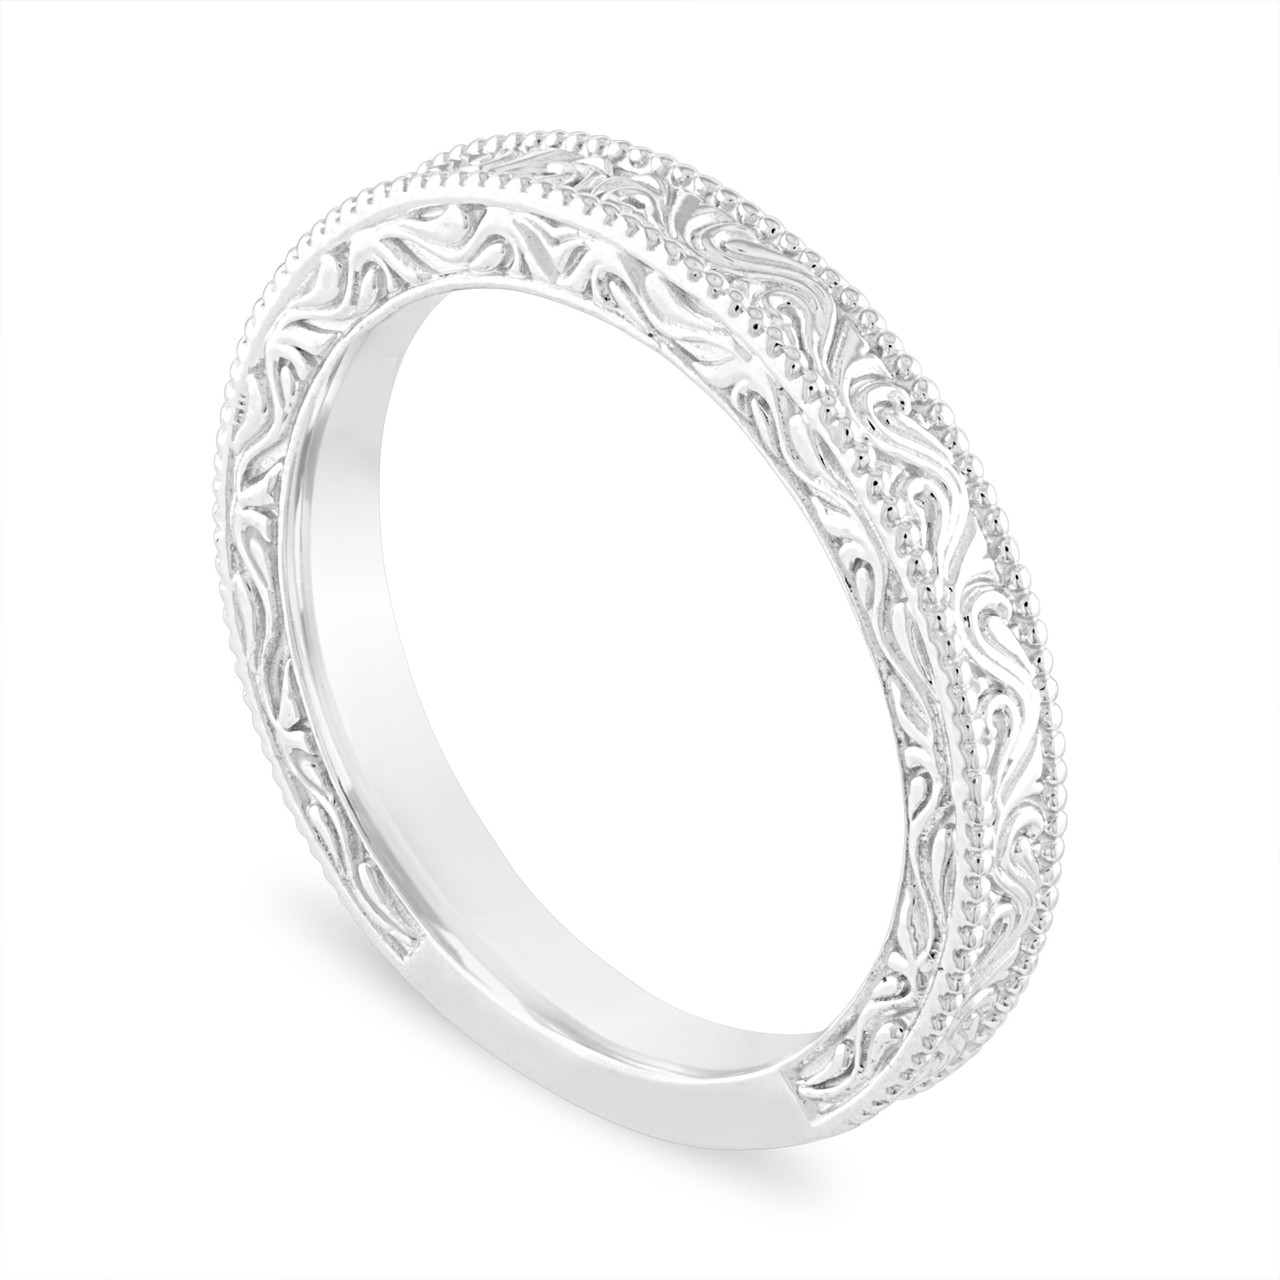 Vintage Wedding Band.Filigree Wedding Band Vintage Wedding Ring Anniversary Ring Antique Style Engraved 14k White Gold Handmade